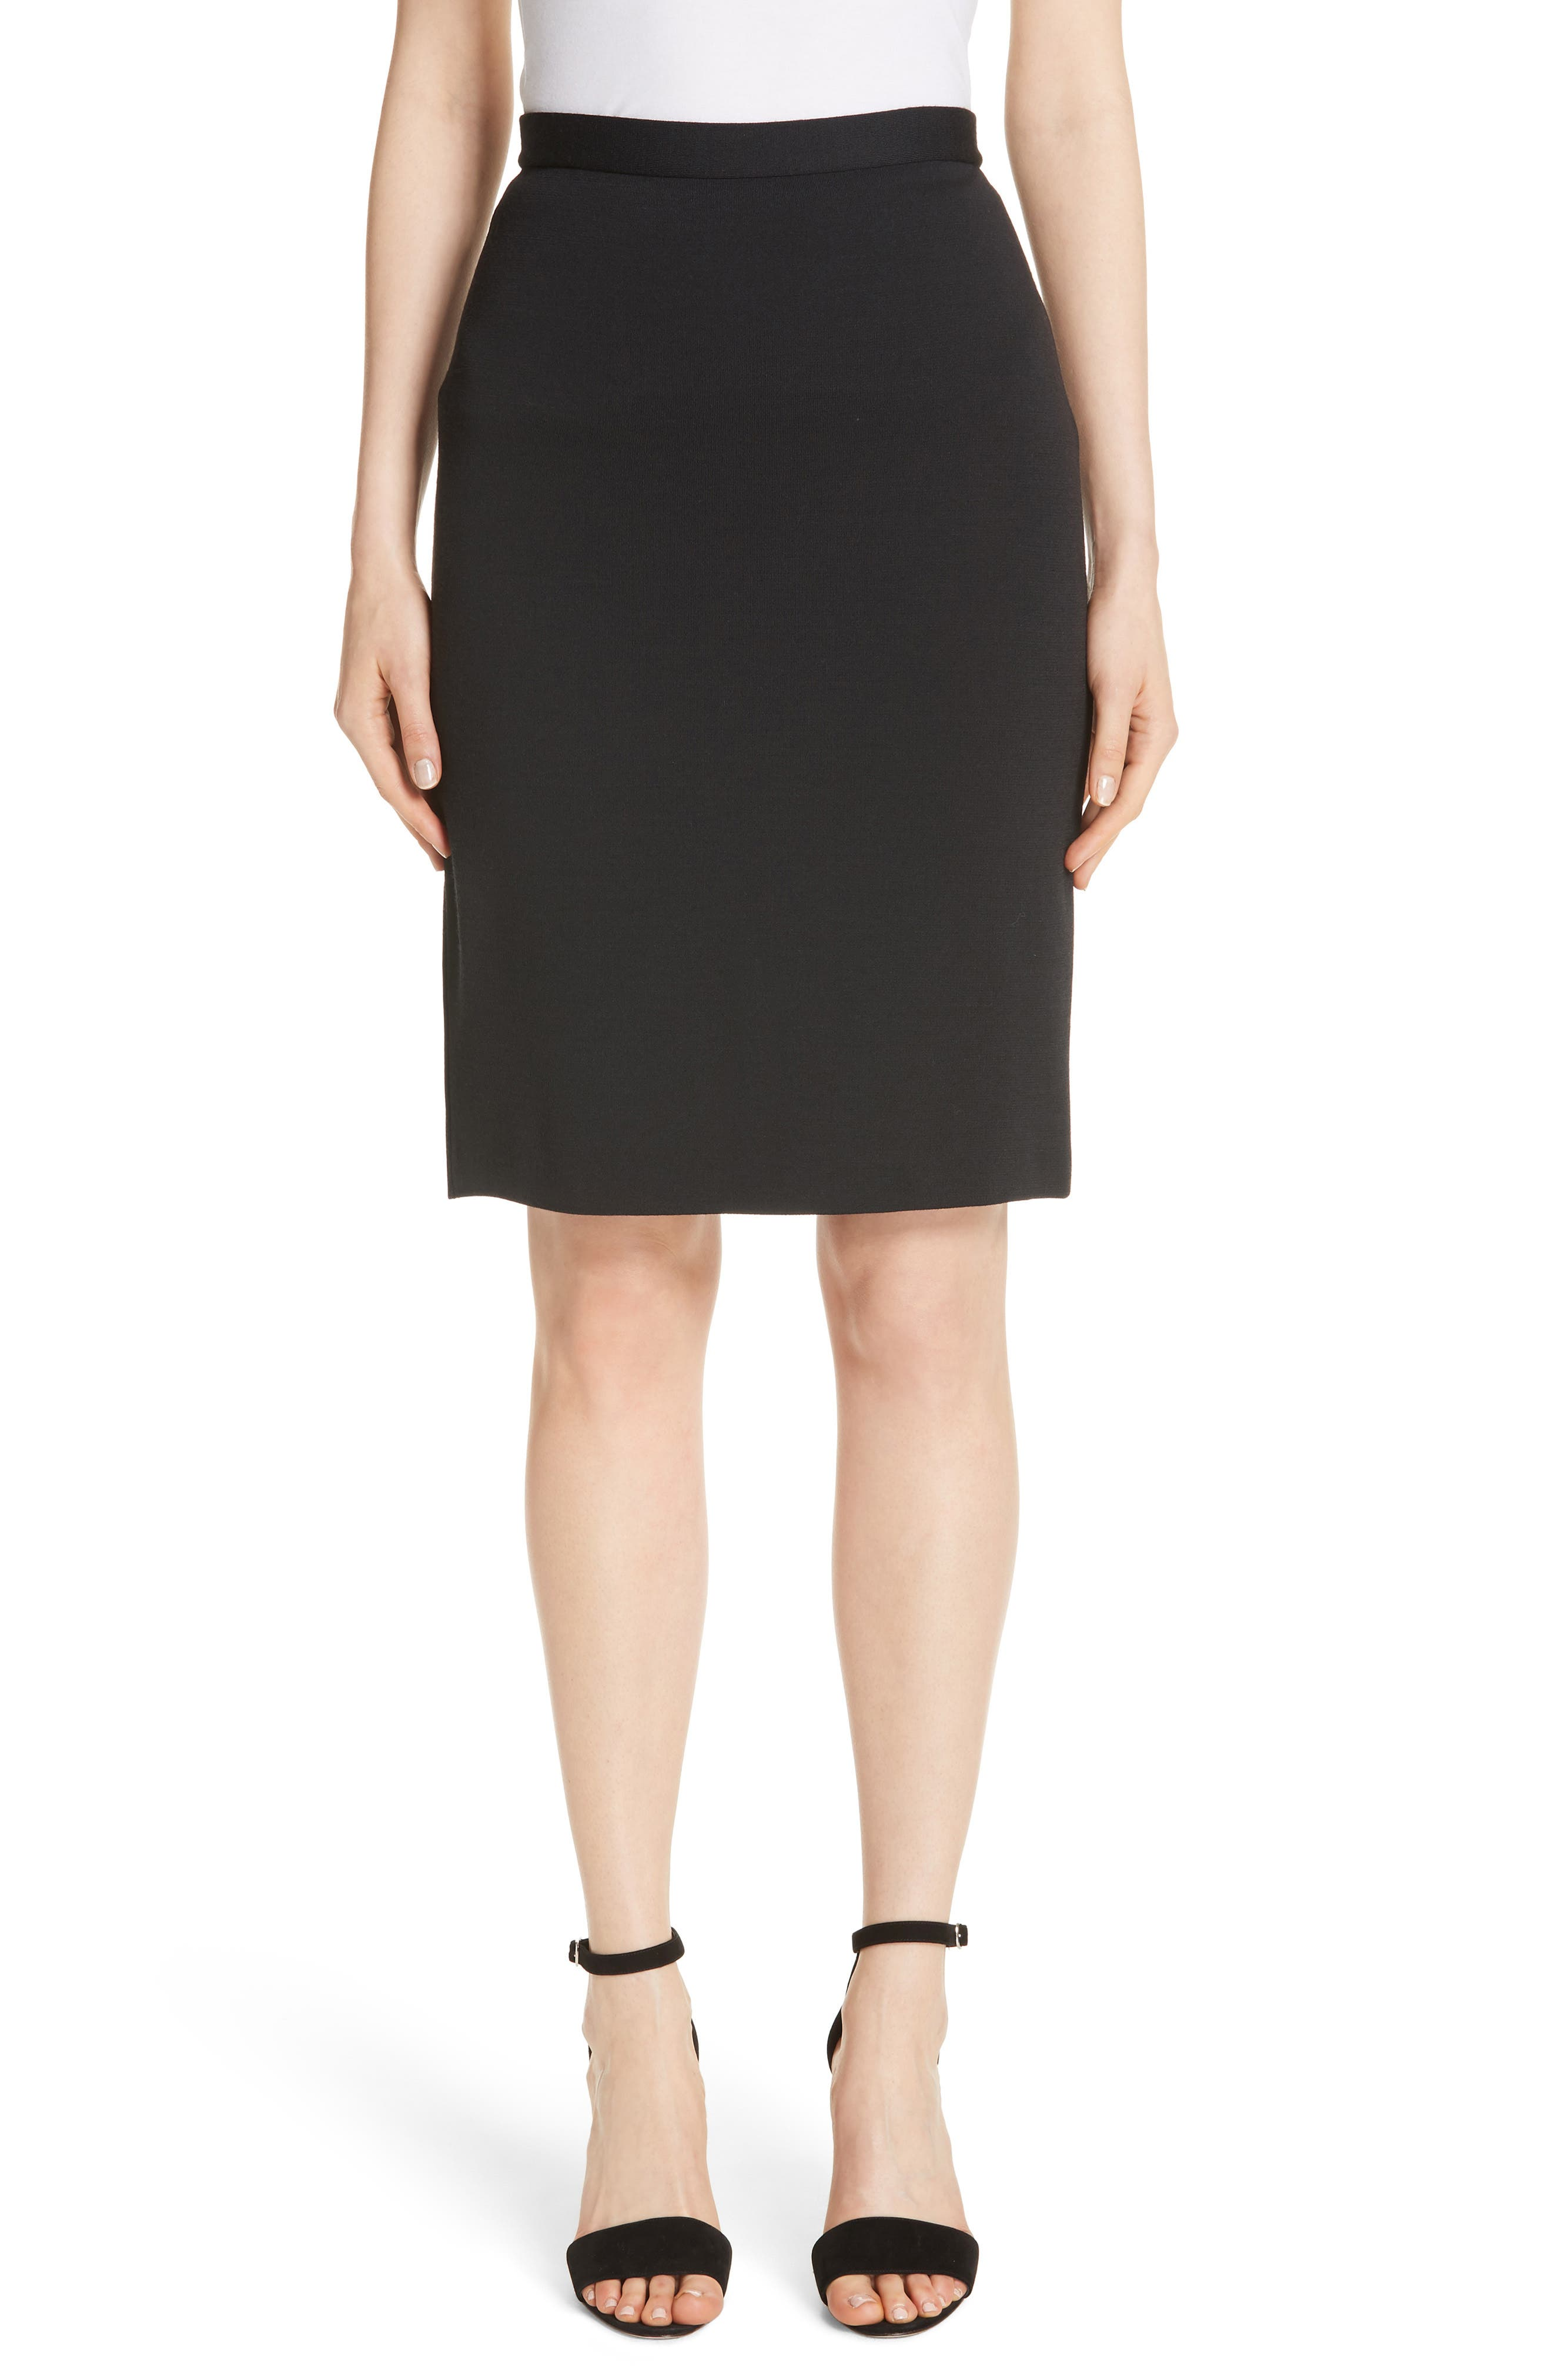 A signature knit shapes a sleek pencil skirt styled with a slit back hem. Style Name: St. John Collection Milano Wool Blend Pencil Skirt. Style Number: 5598088. Available in stores.